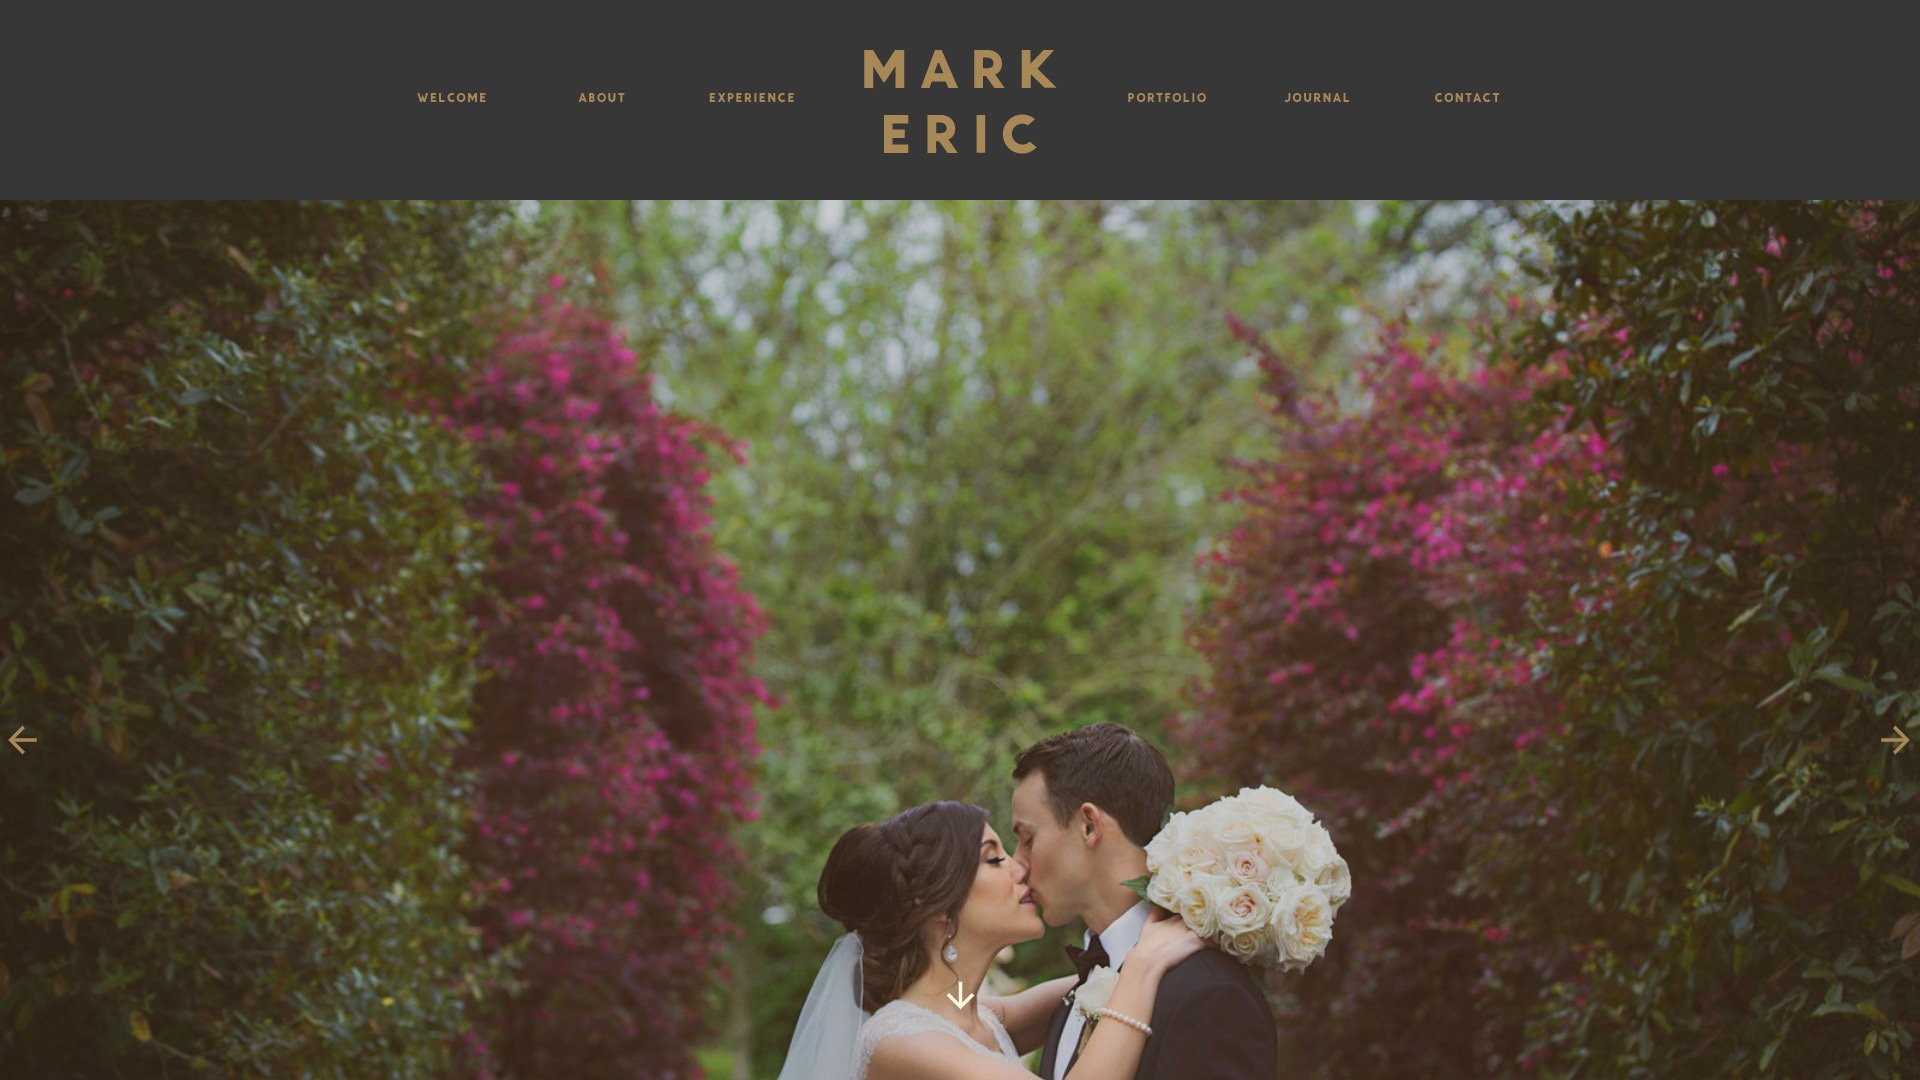 A Photo Of Mark Eric Photography's Homepage